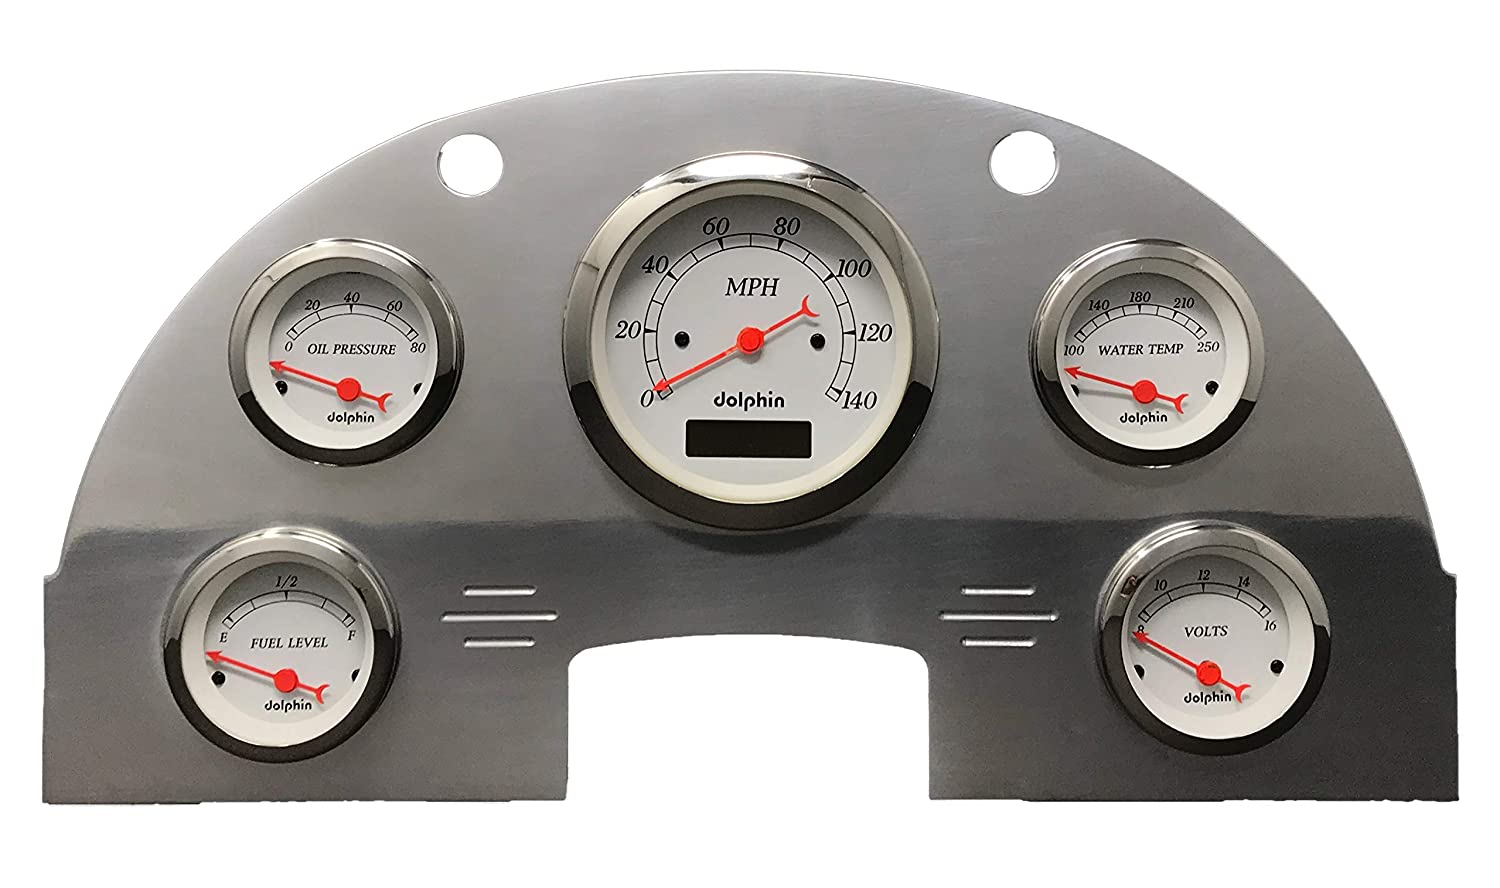 amazon com dolphin gauges compatible with 1956 ford car car wire diagram for 1956 ford f100